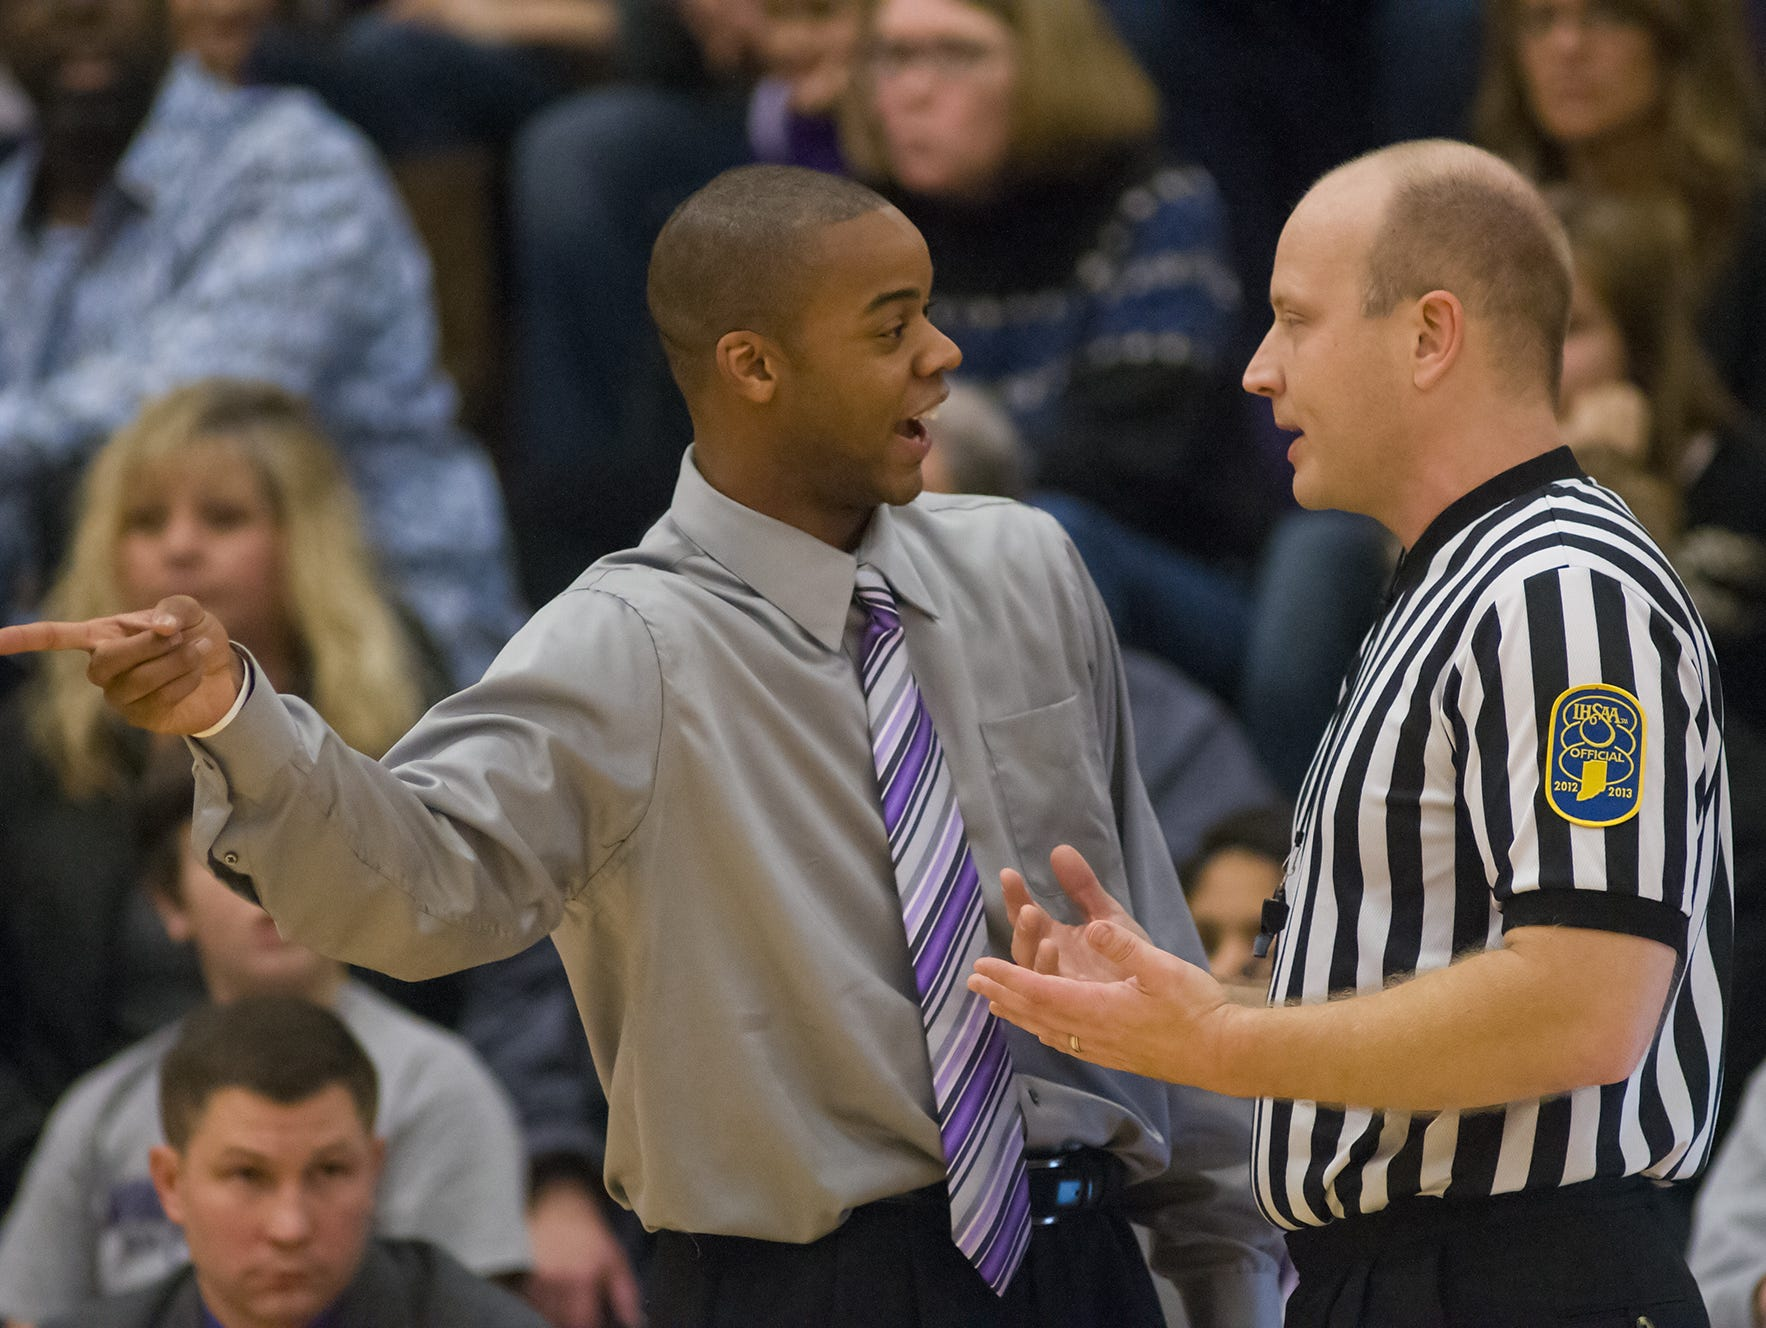 FILE -- Brownsburg High School's head coach, Ronald Nored, questions an official during a break in the action. Dec. 5, 2013. He currently coaches the Brooklyn Nets' D-League affiliate.